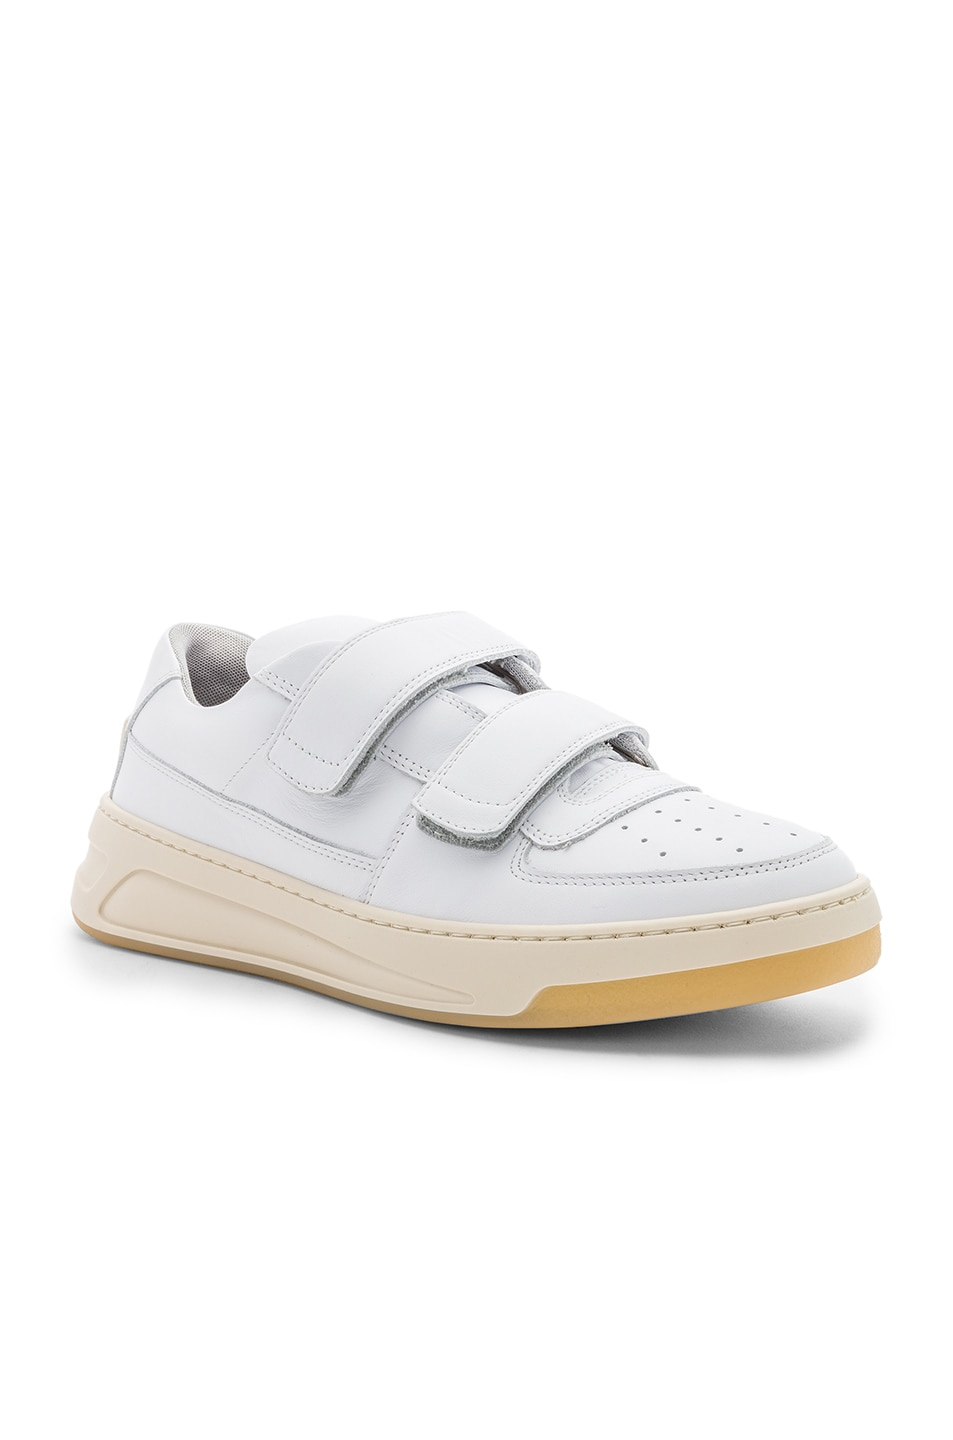 Acne Leather Pete Sneakers in . 05mHUb